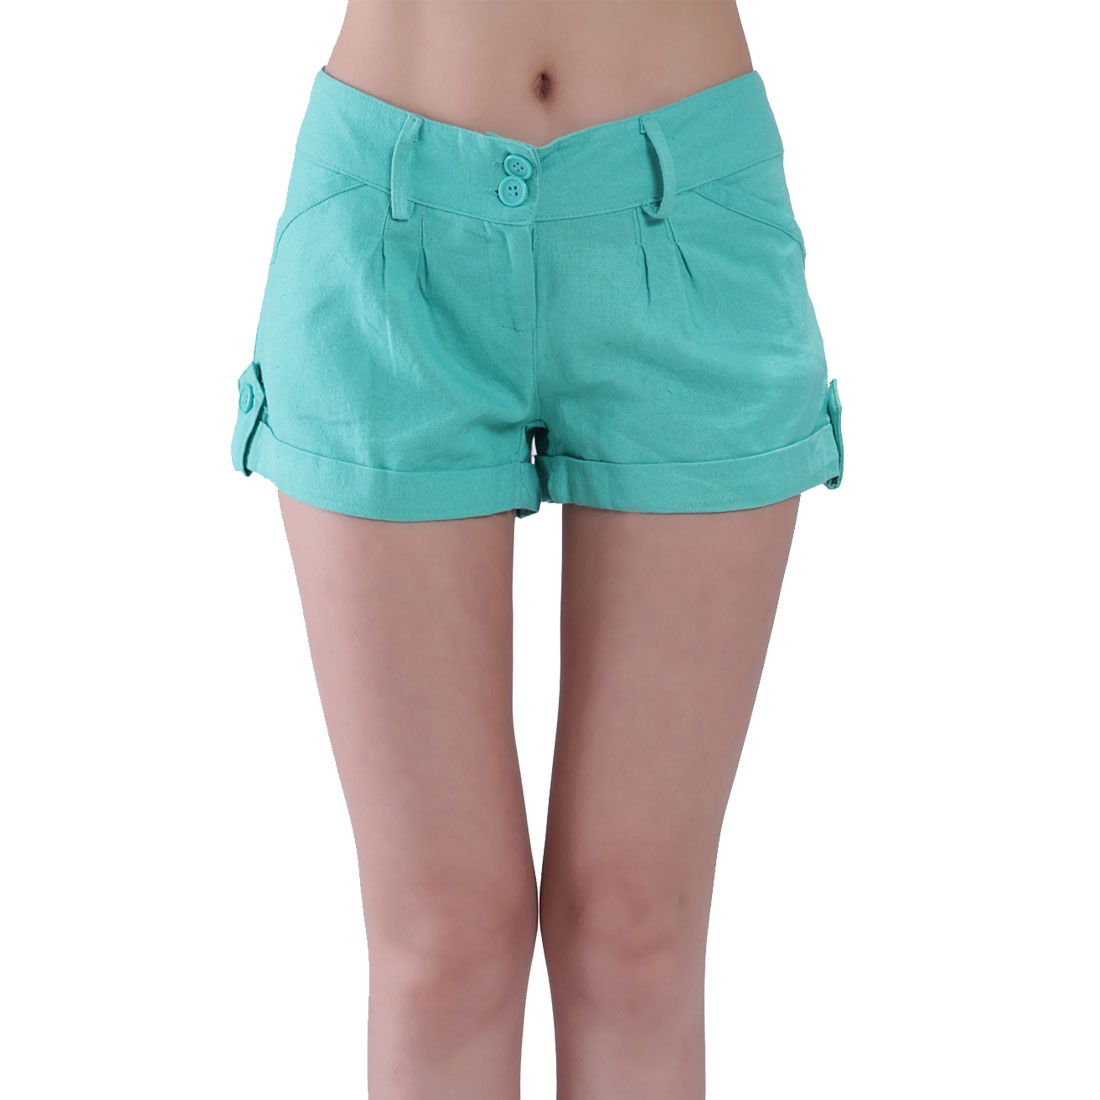 Low Waist Fake Hip Pockets Zippered Short Pants Green M for Women